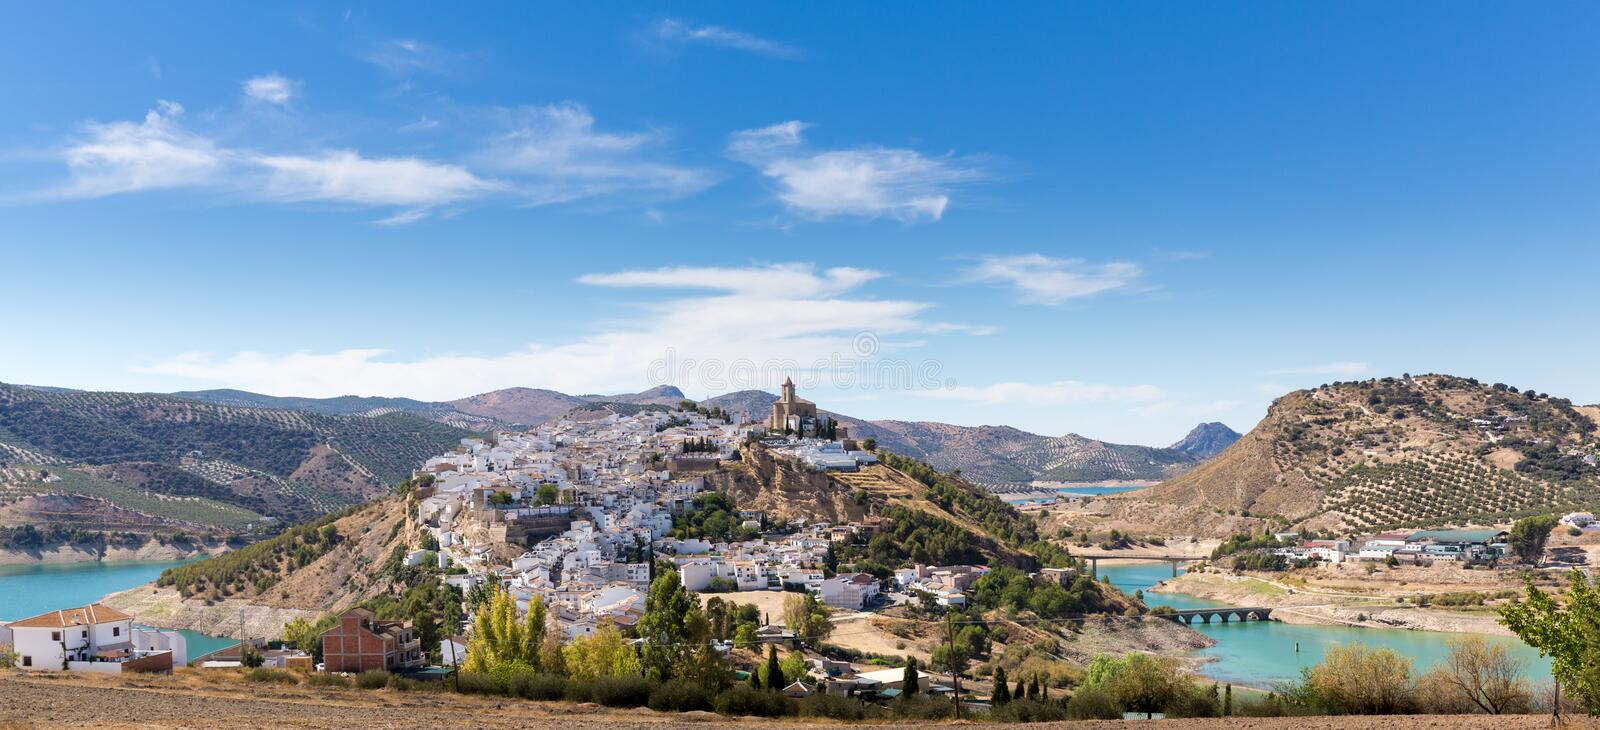 Hilltop town of Iznajar in Andalucia royalty free stock photos